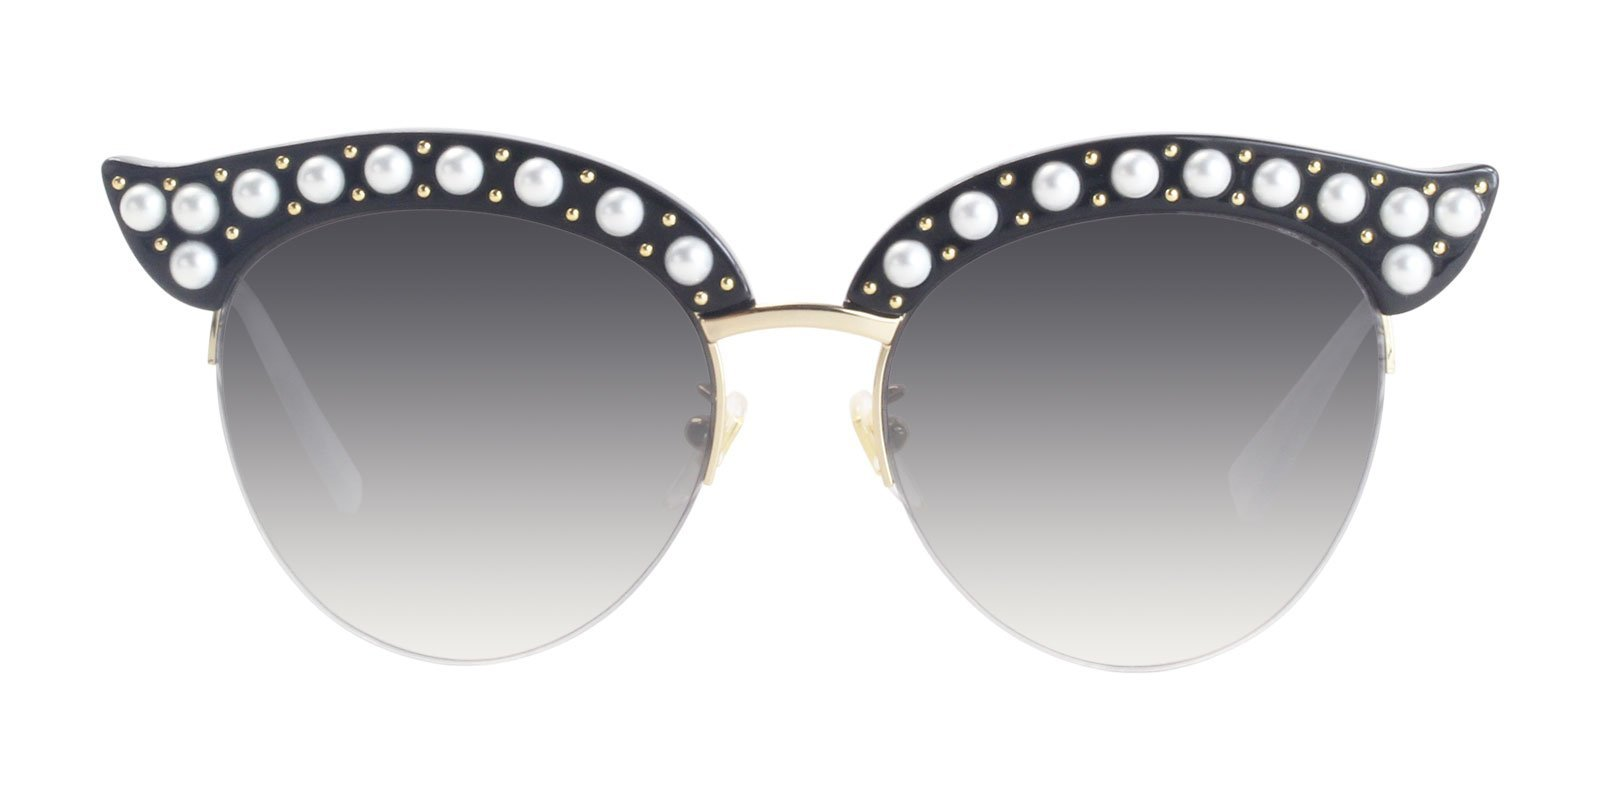 f0ee09e6cc7 gucci-sunglasses-gucci-gg0212s-black-gold-gray-designer-eyes ...